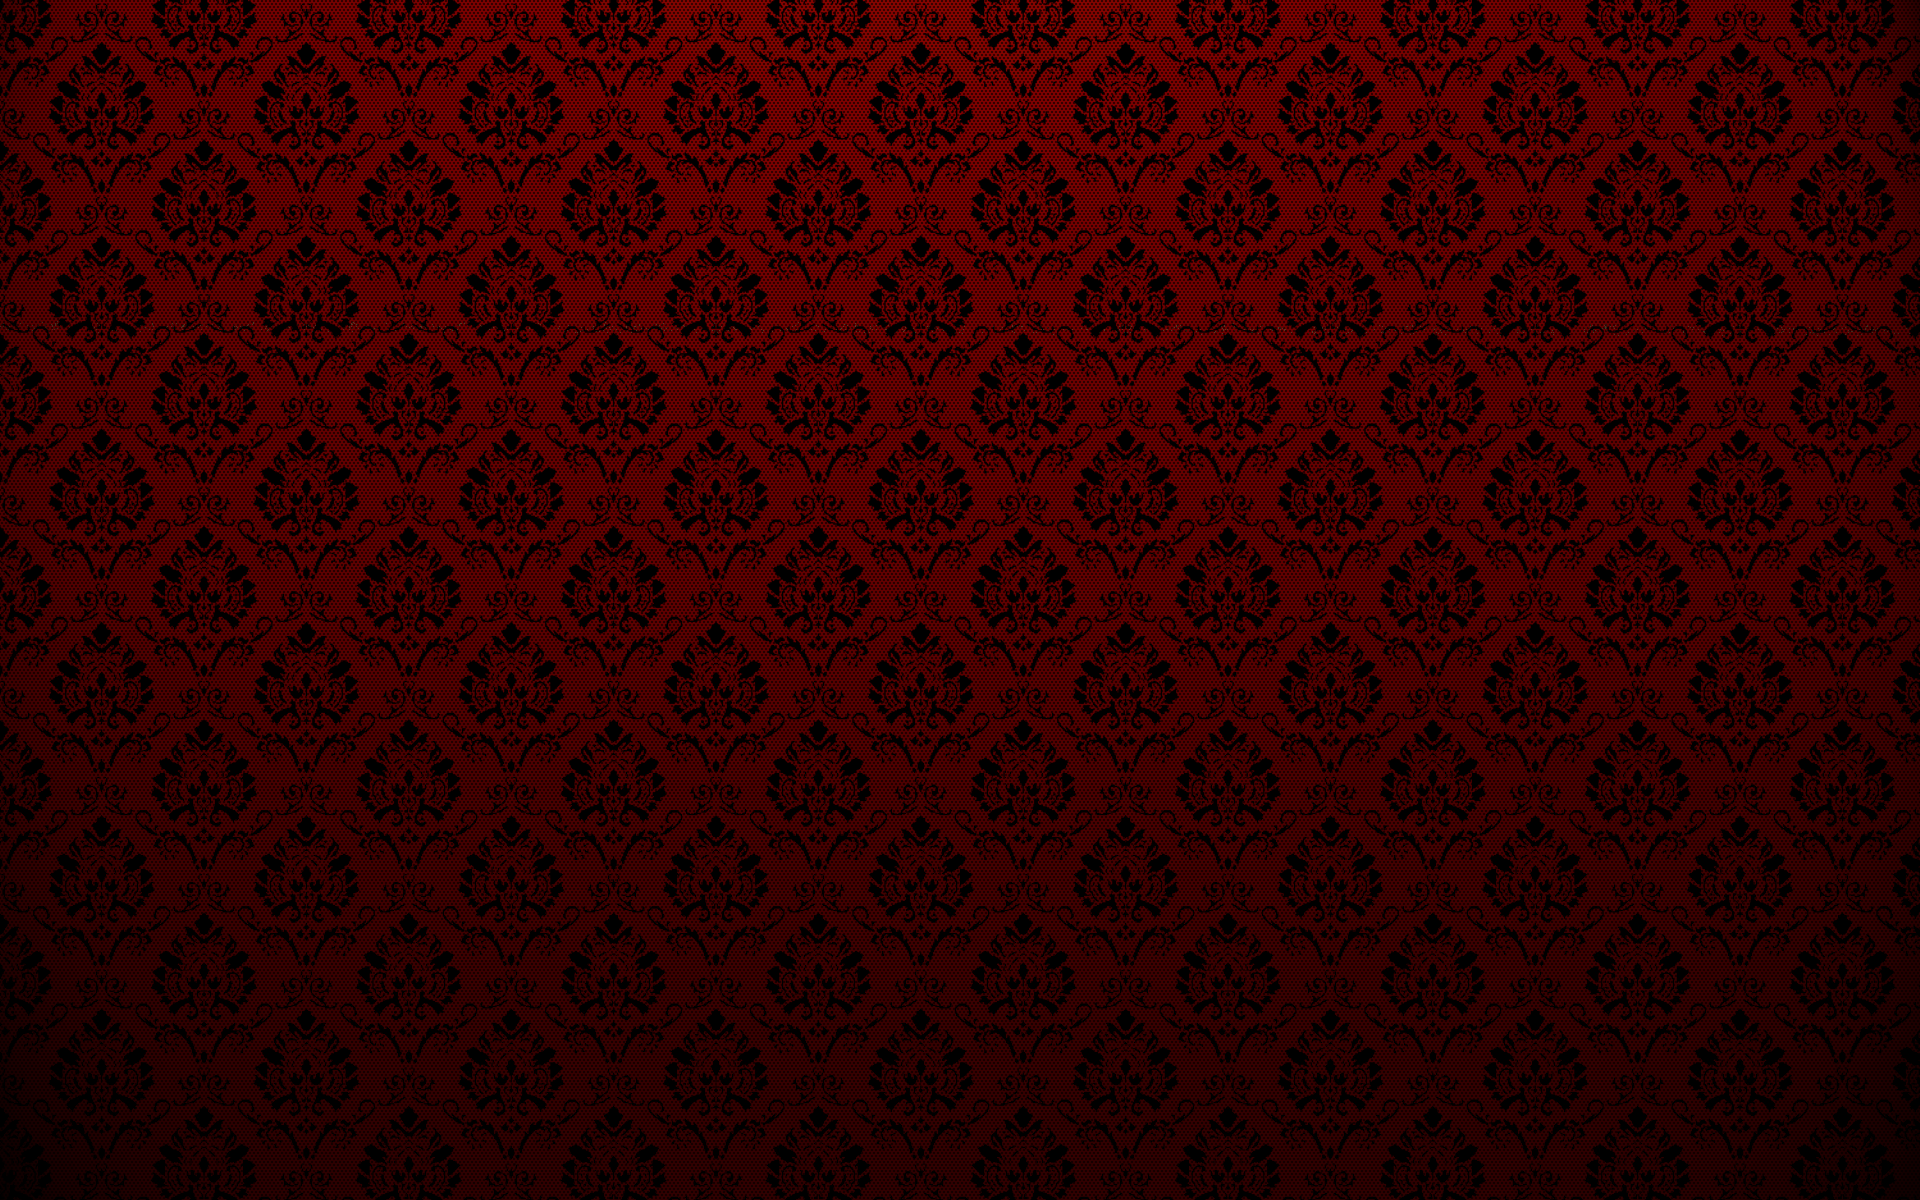 red textured backgrounds.